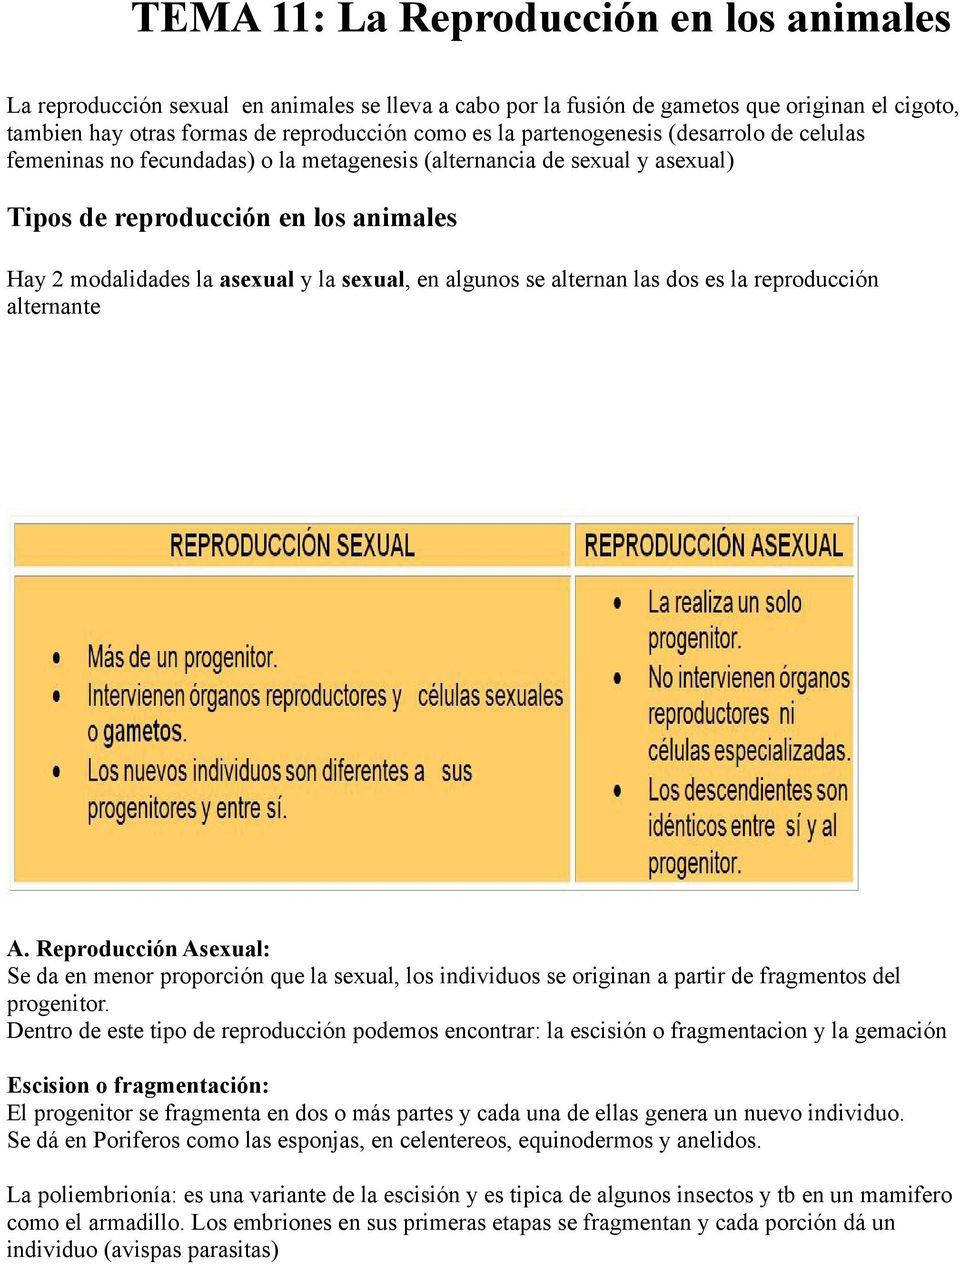 Reproduccion celular sexual y asexual pdf